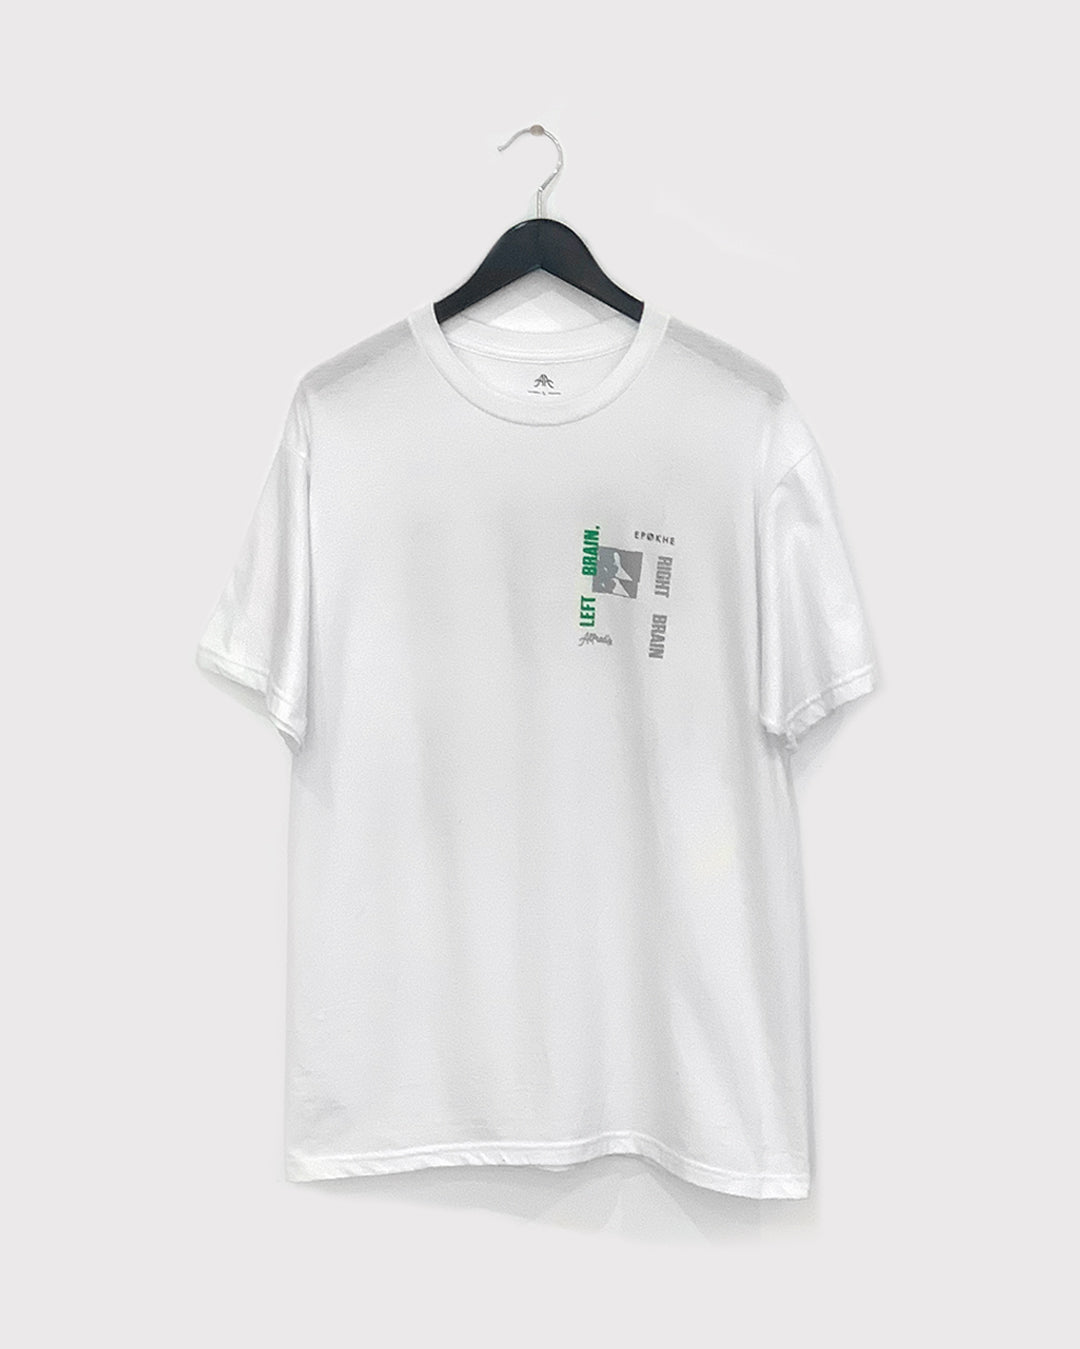 LBRB - Standard Fit Tee - White